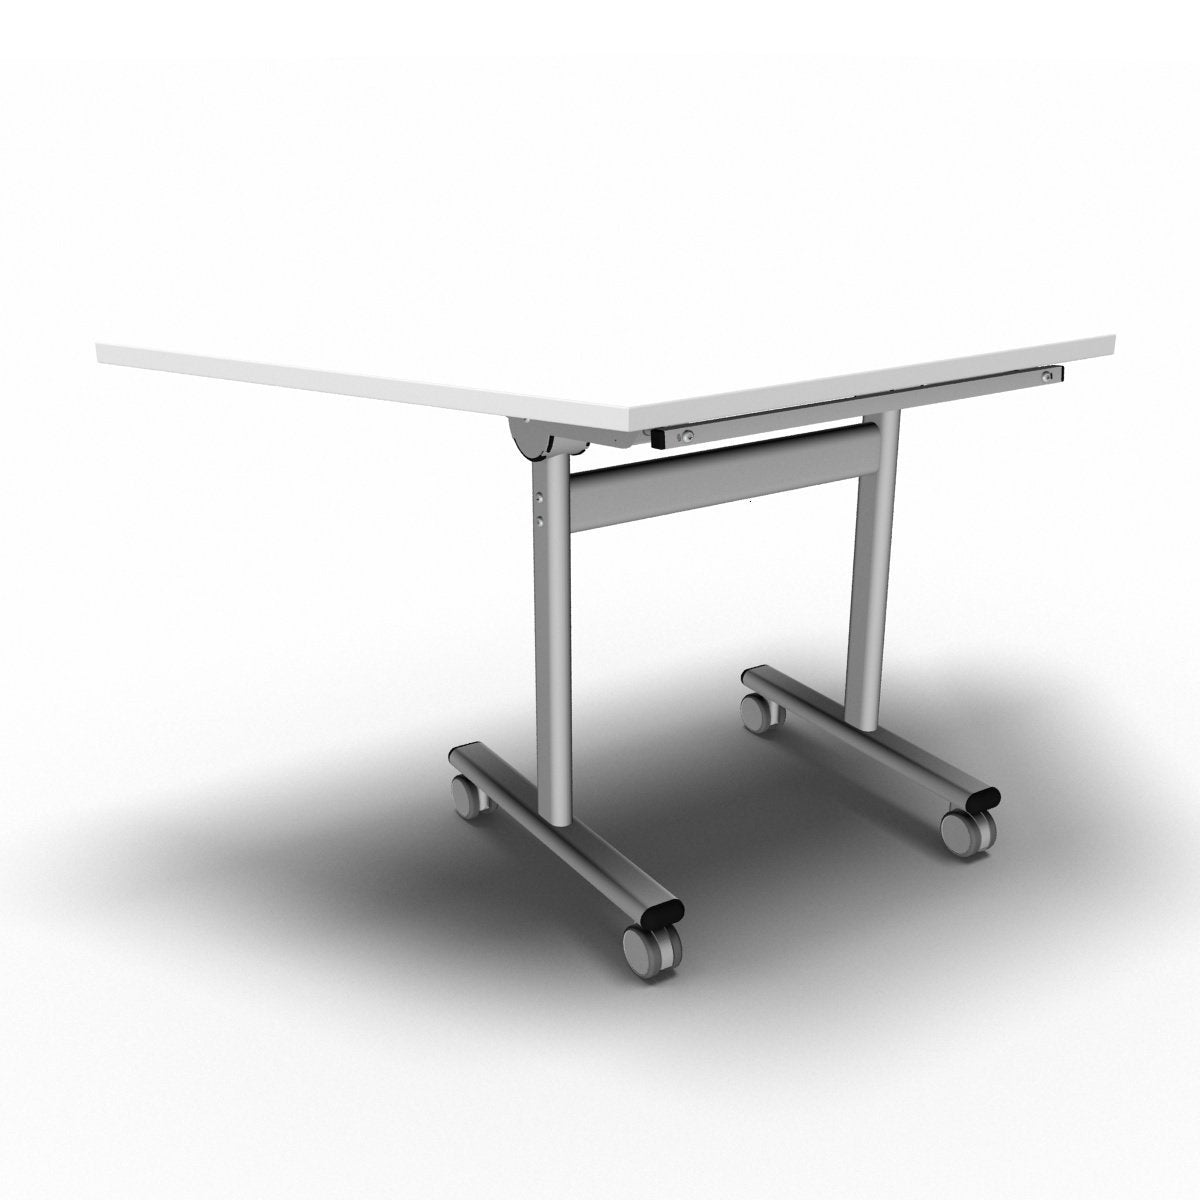 Table 1400 x 700 x 720mm / Trapezoidal / White Synergy Flip Top Tables